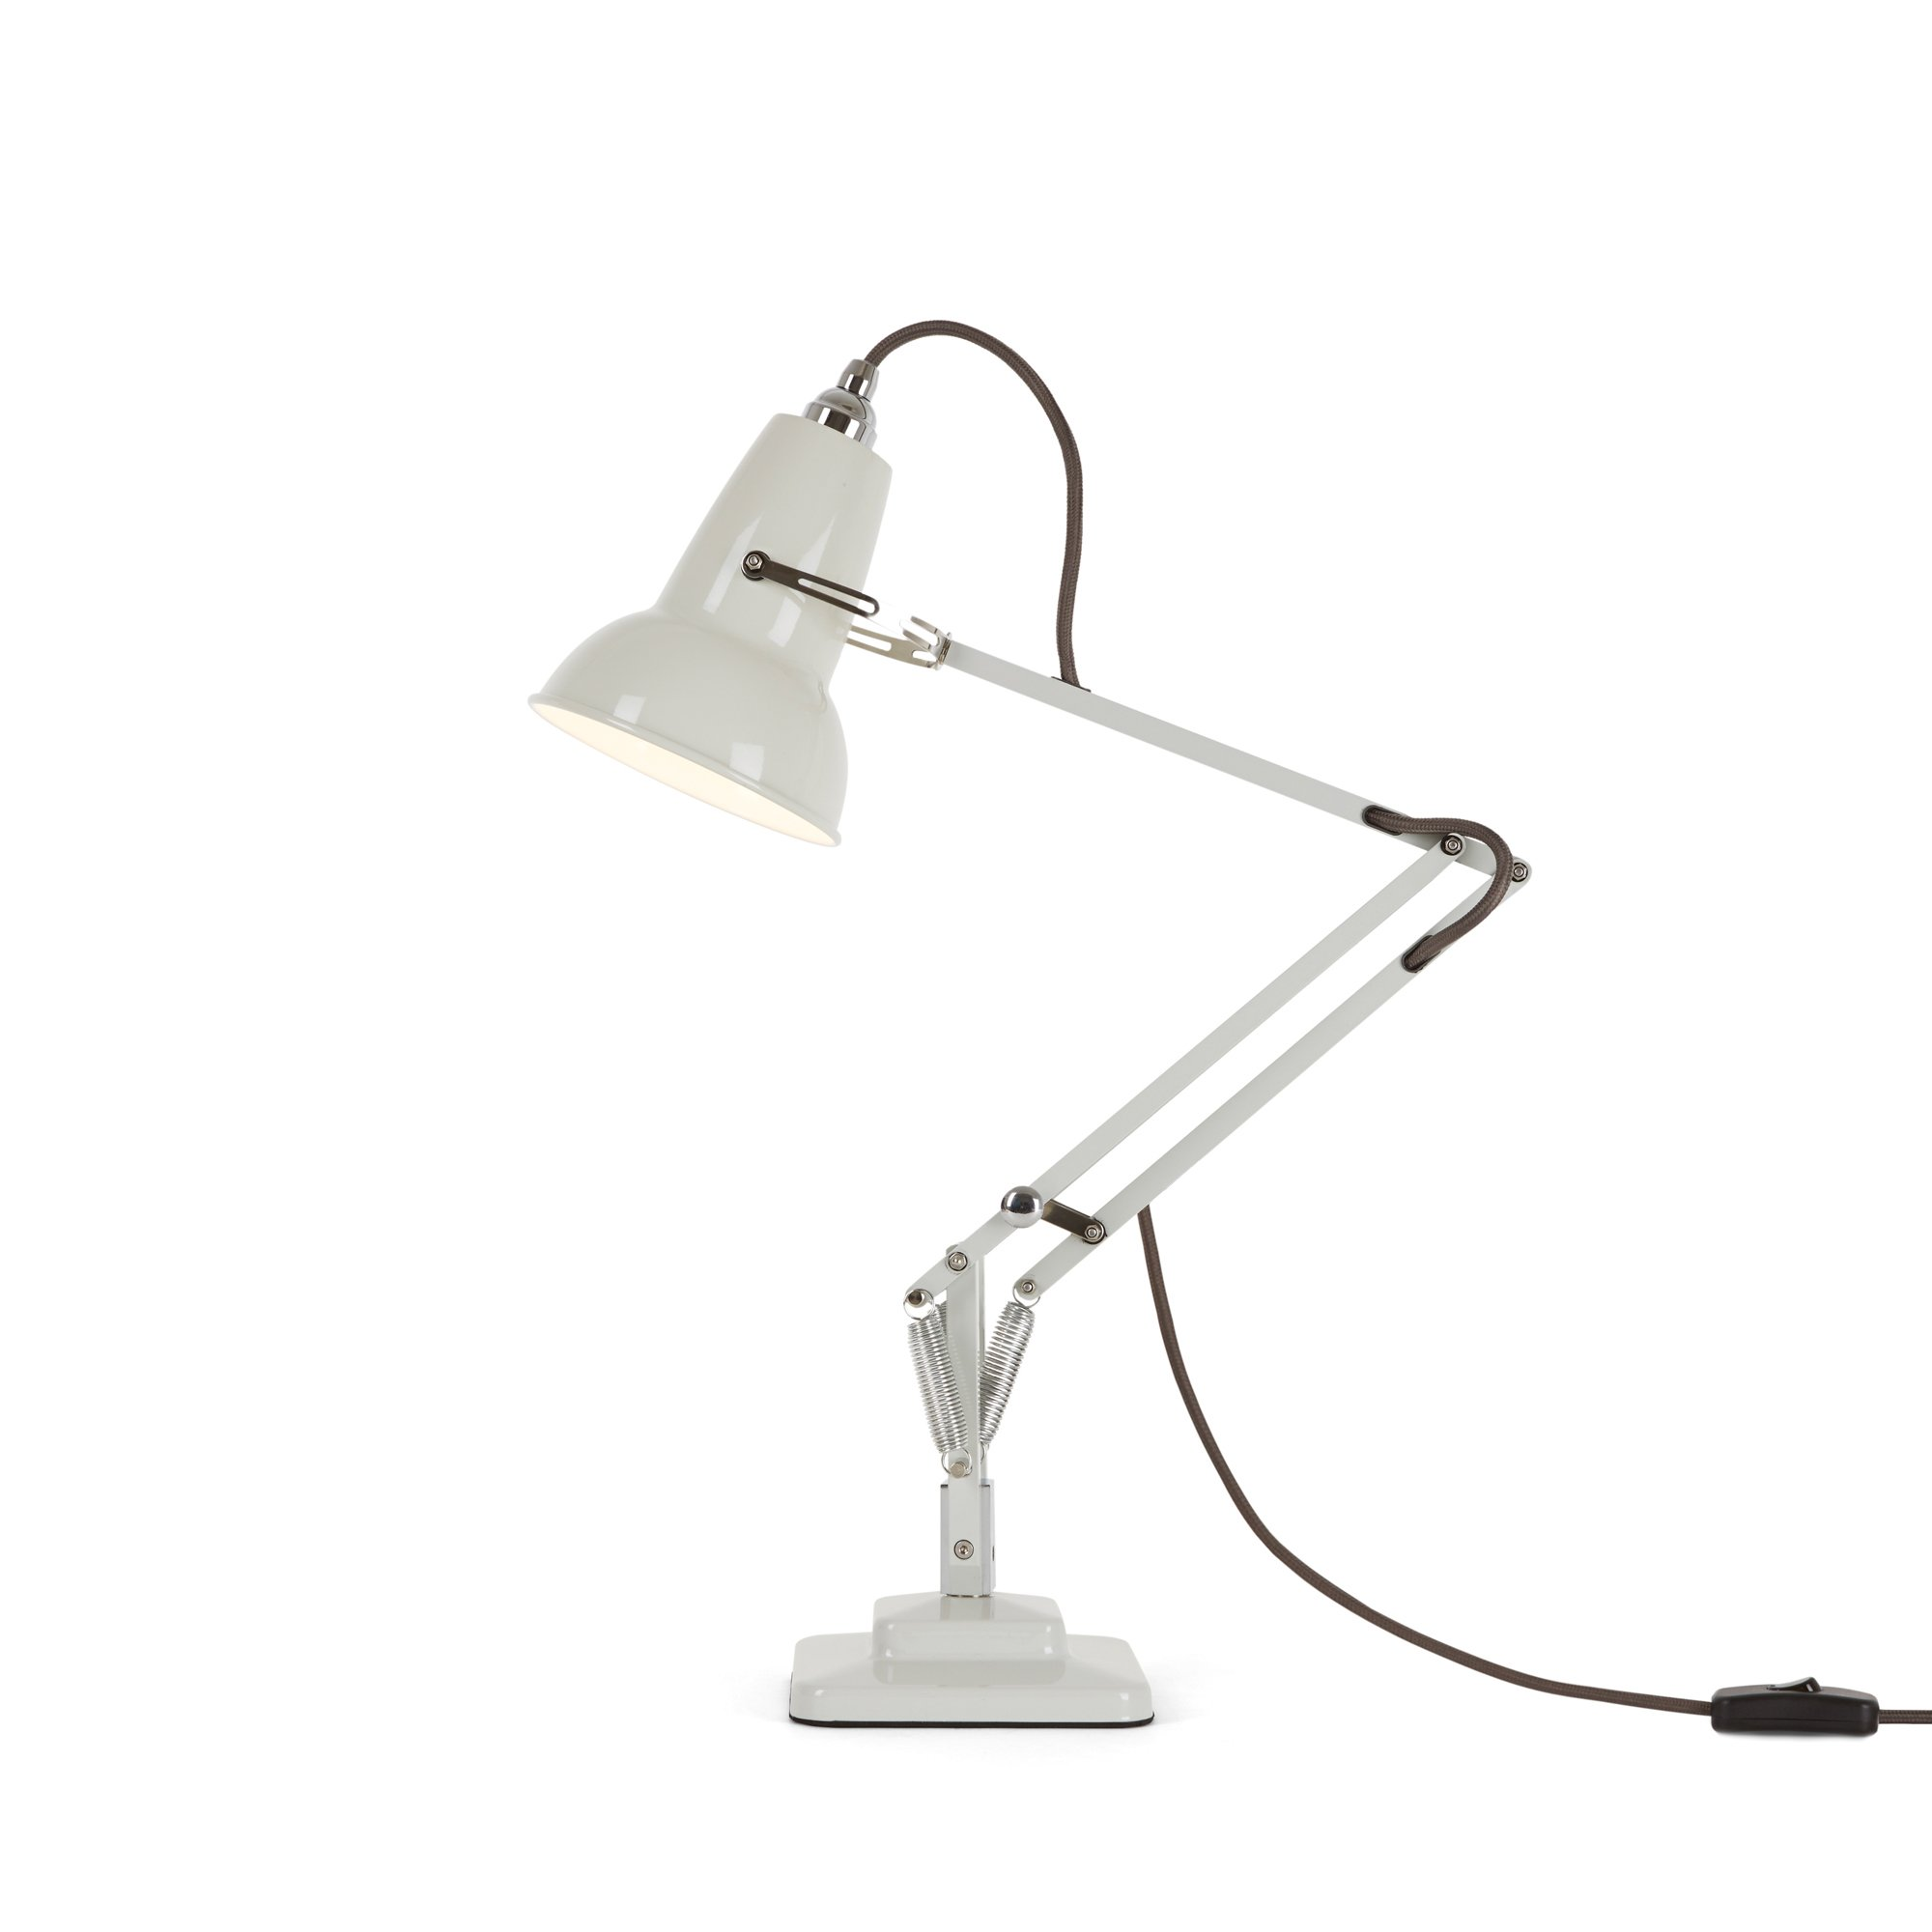 Anglepoise Original 1227 Mini Desk Lamp Linen White With Grey Cable Energy Class A Buy Online In Dominica At Dominica Desertcart Com Productid 51259803